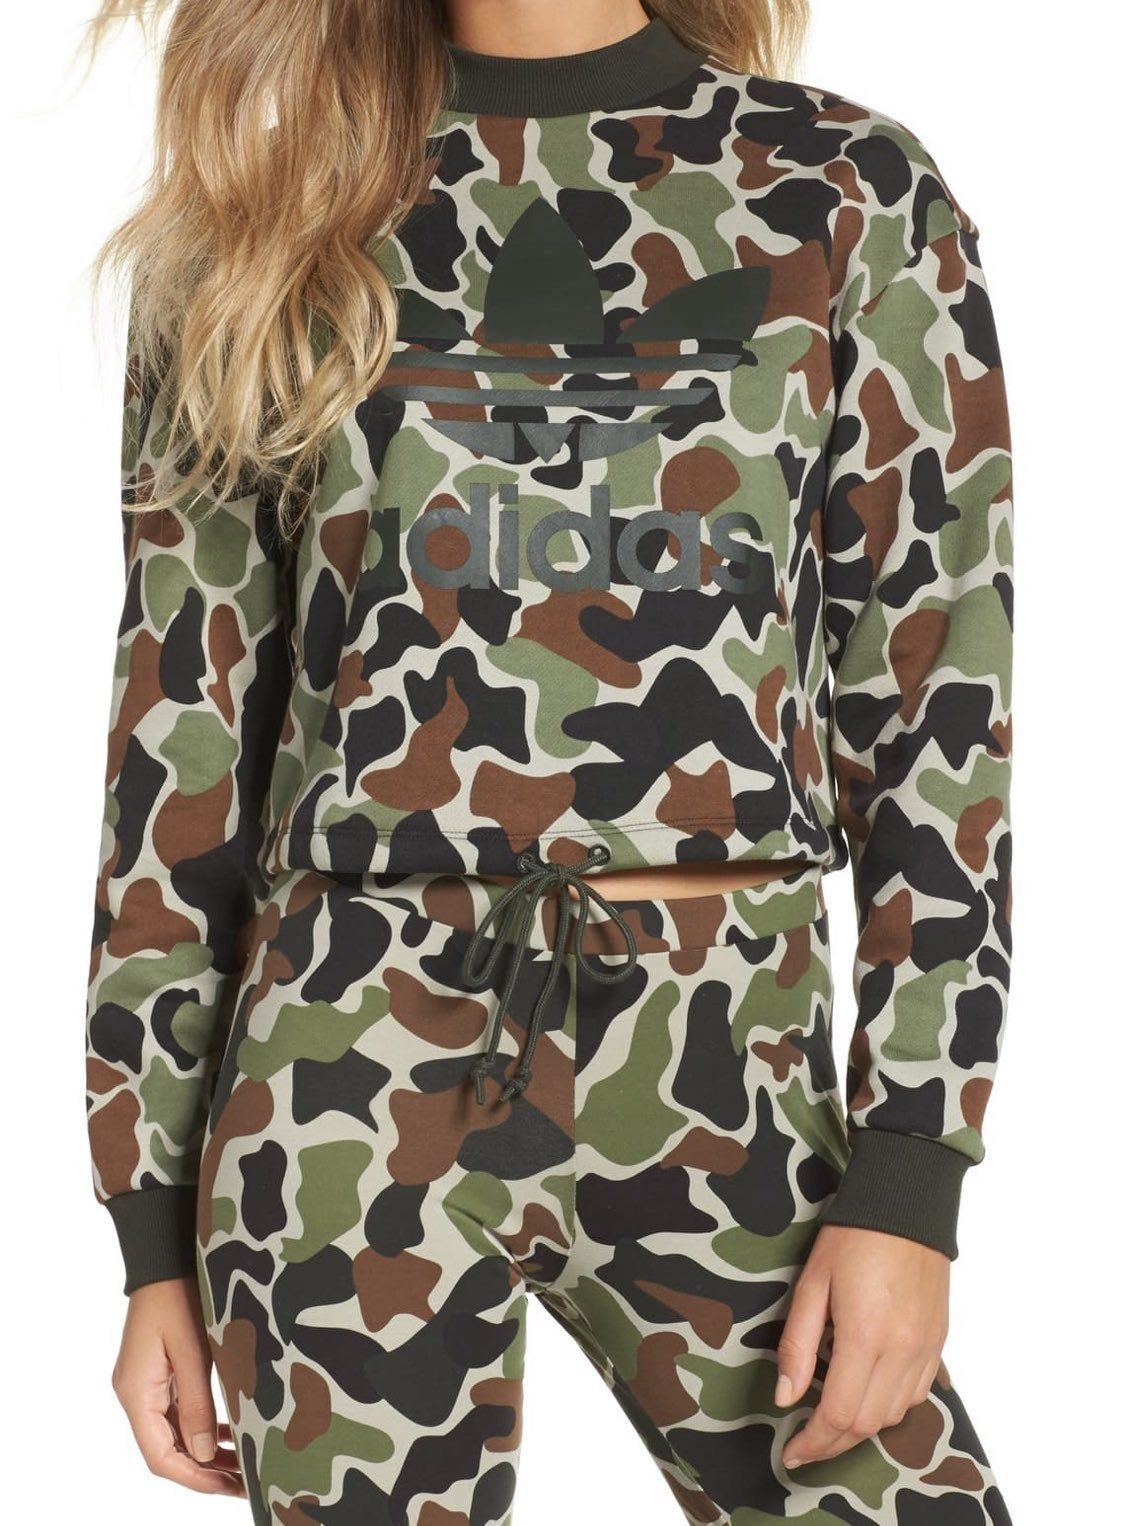 Predownload: Size Large Cropped Top With A Black Drawstring At Bottom Cowl Neck With Matching Sweat Pants Worn Once Crop Sweatshirt Camo Print Adidas Camo [ 1526 x 1124 Pixel ]